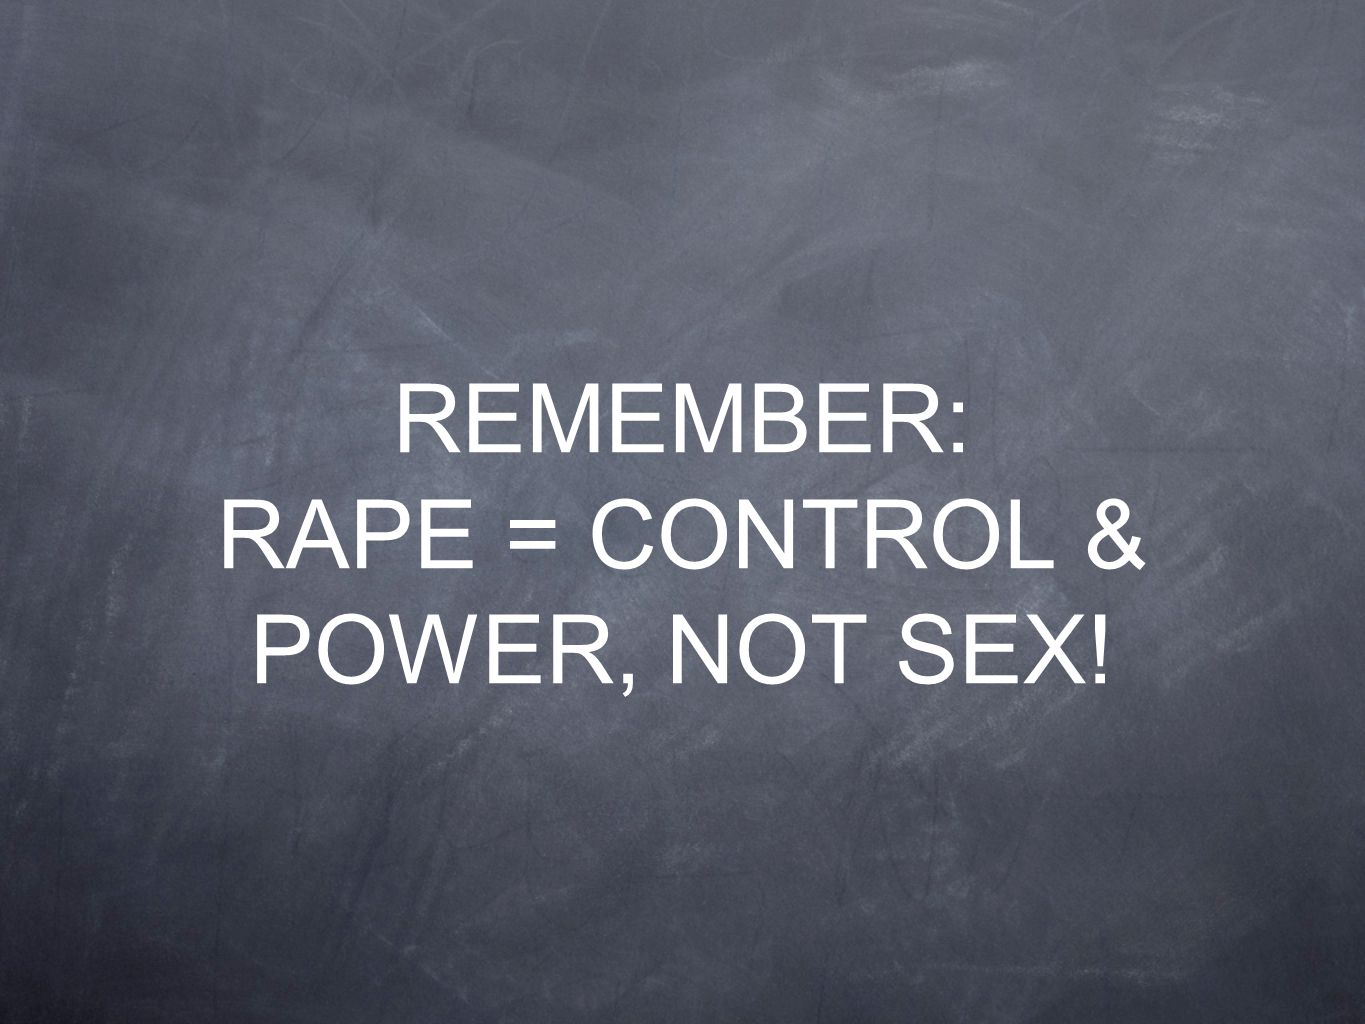 REMEMBER: RAPE = CONTROL & POWER, NOT SEX!